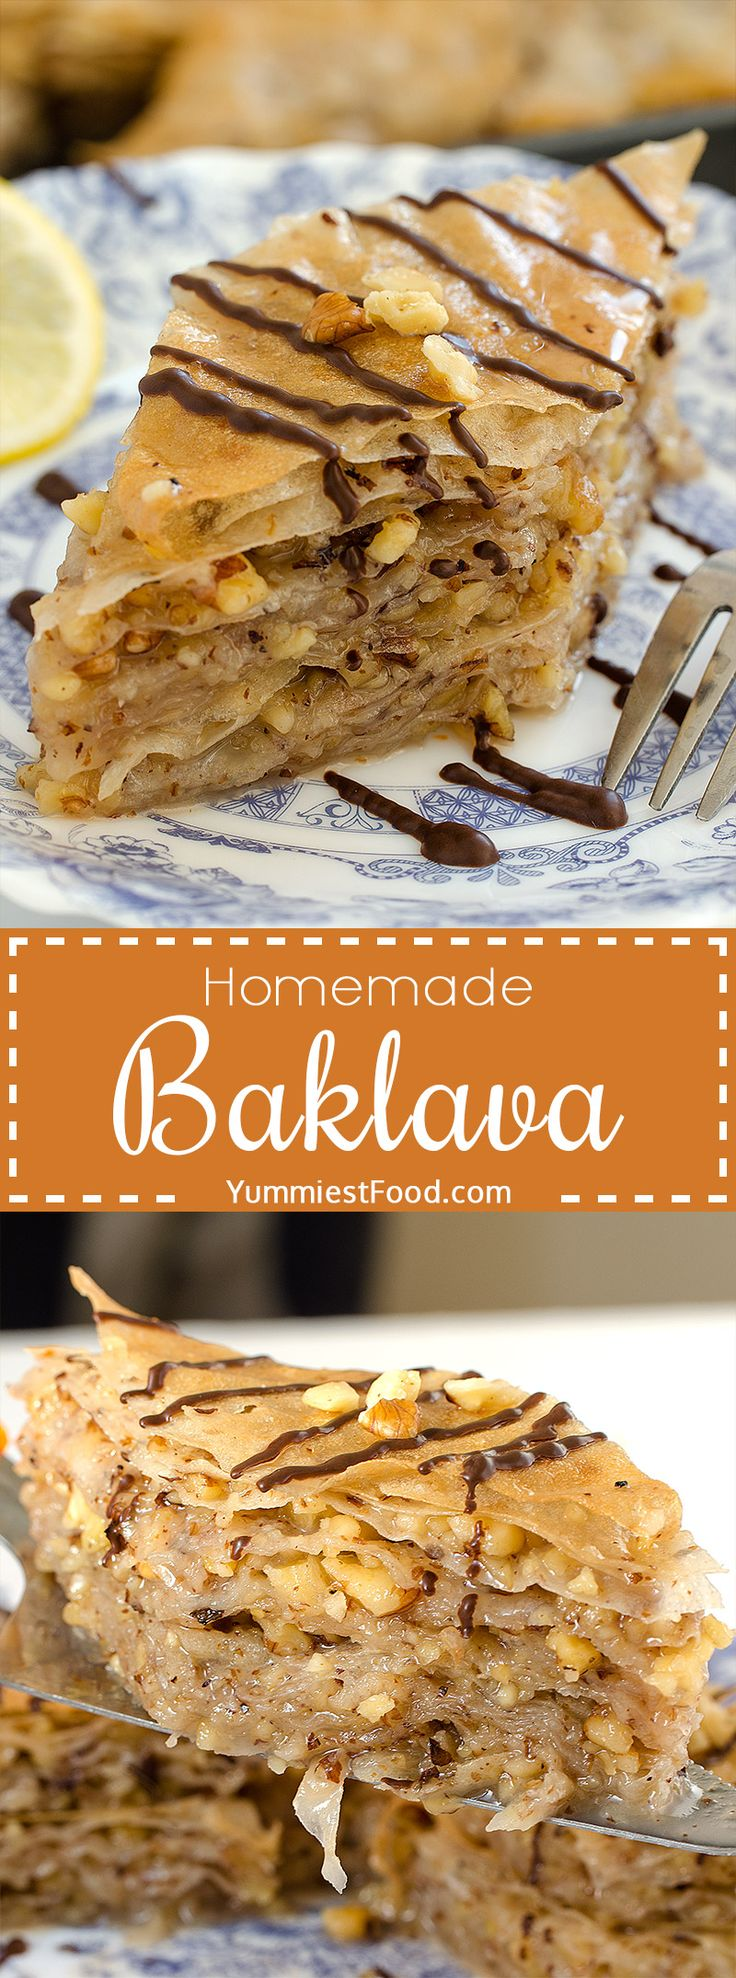 This Baklava is perfectly moist, sweet, crispy and very delicious. So quick and easy to make with only few ingredients! This Baklava is perfect for every occasion!